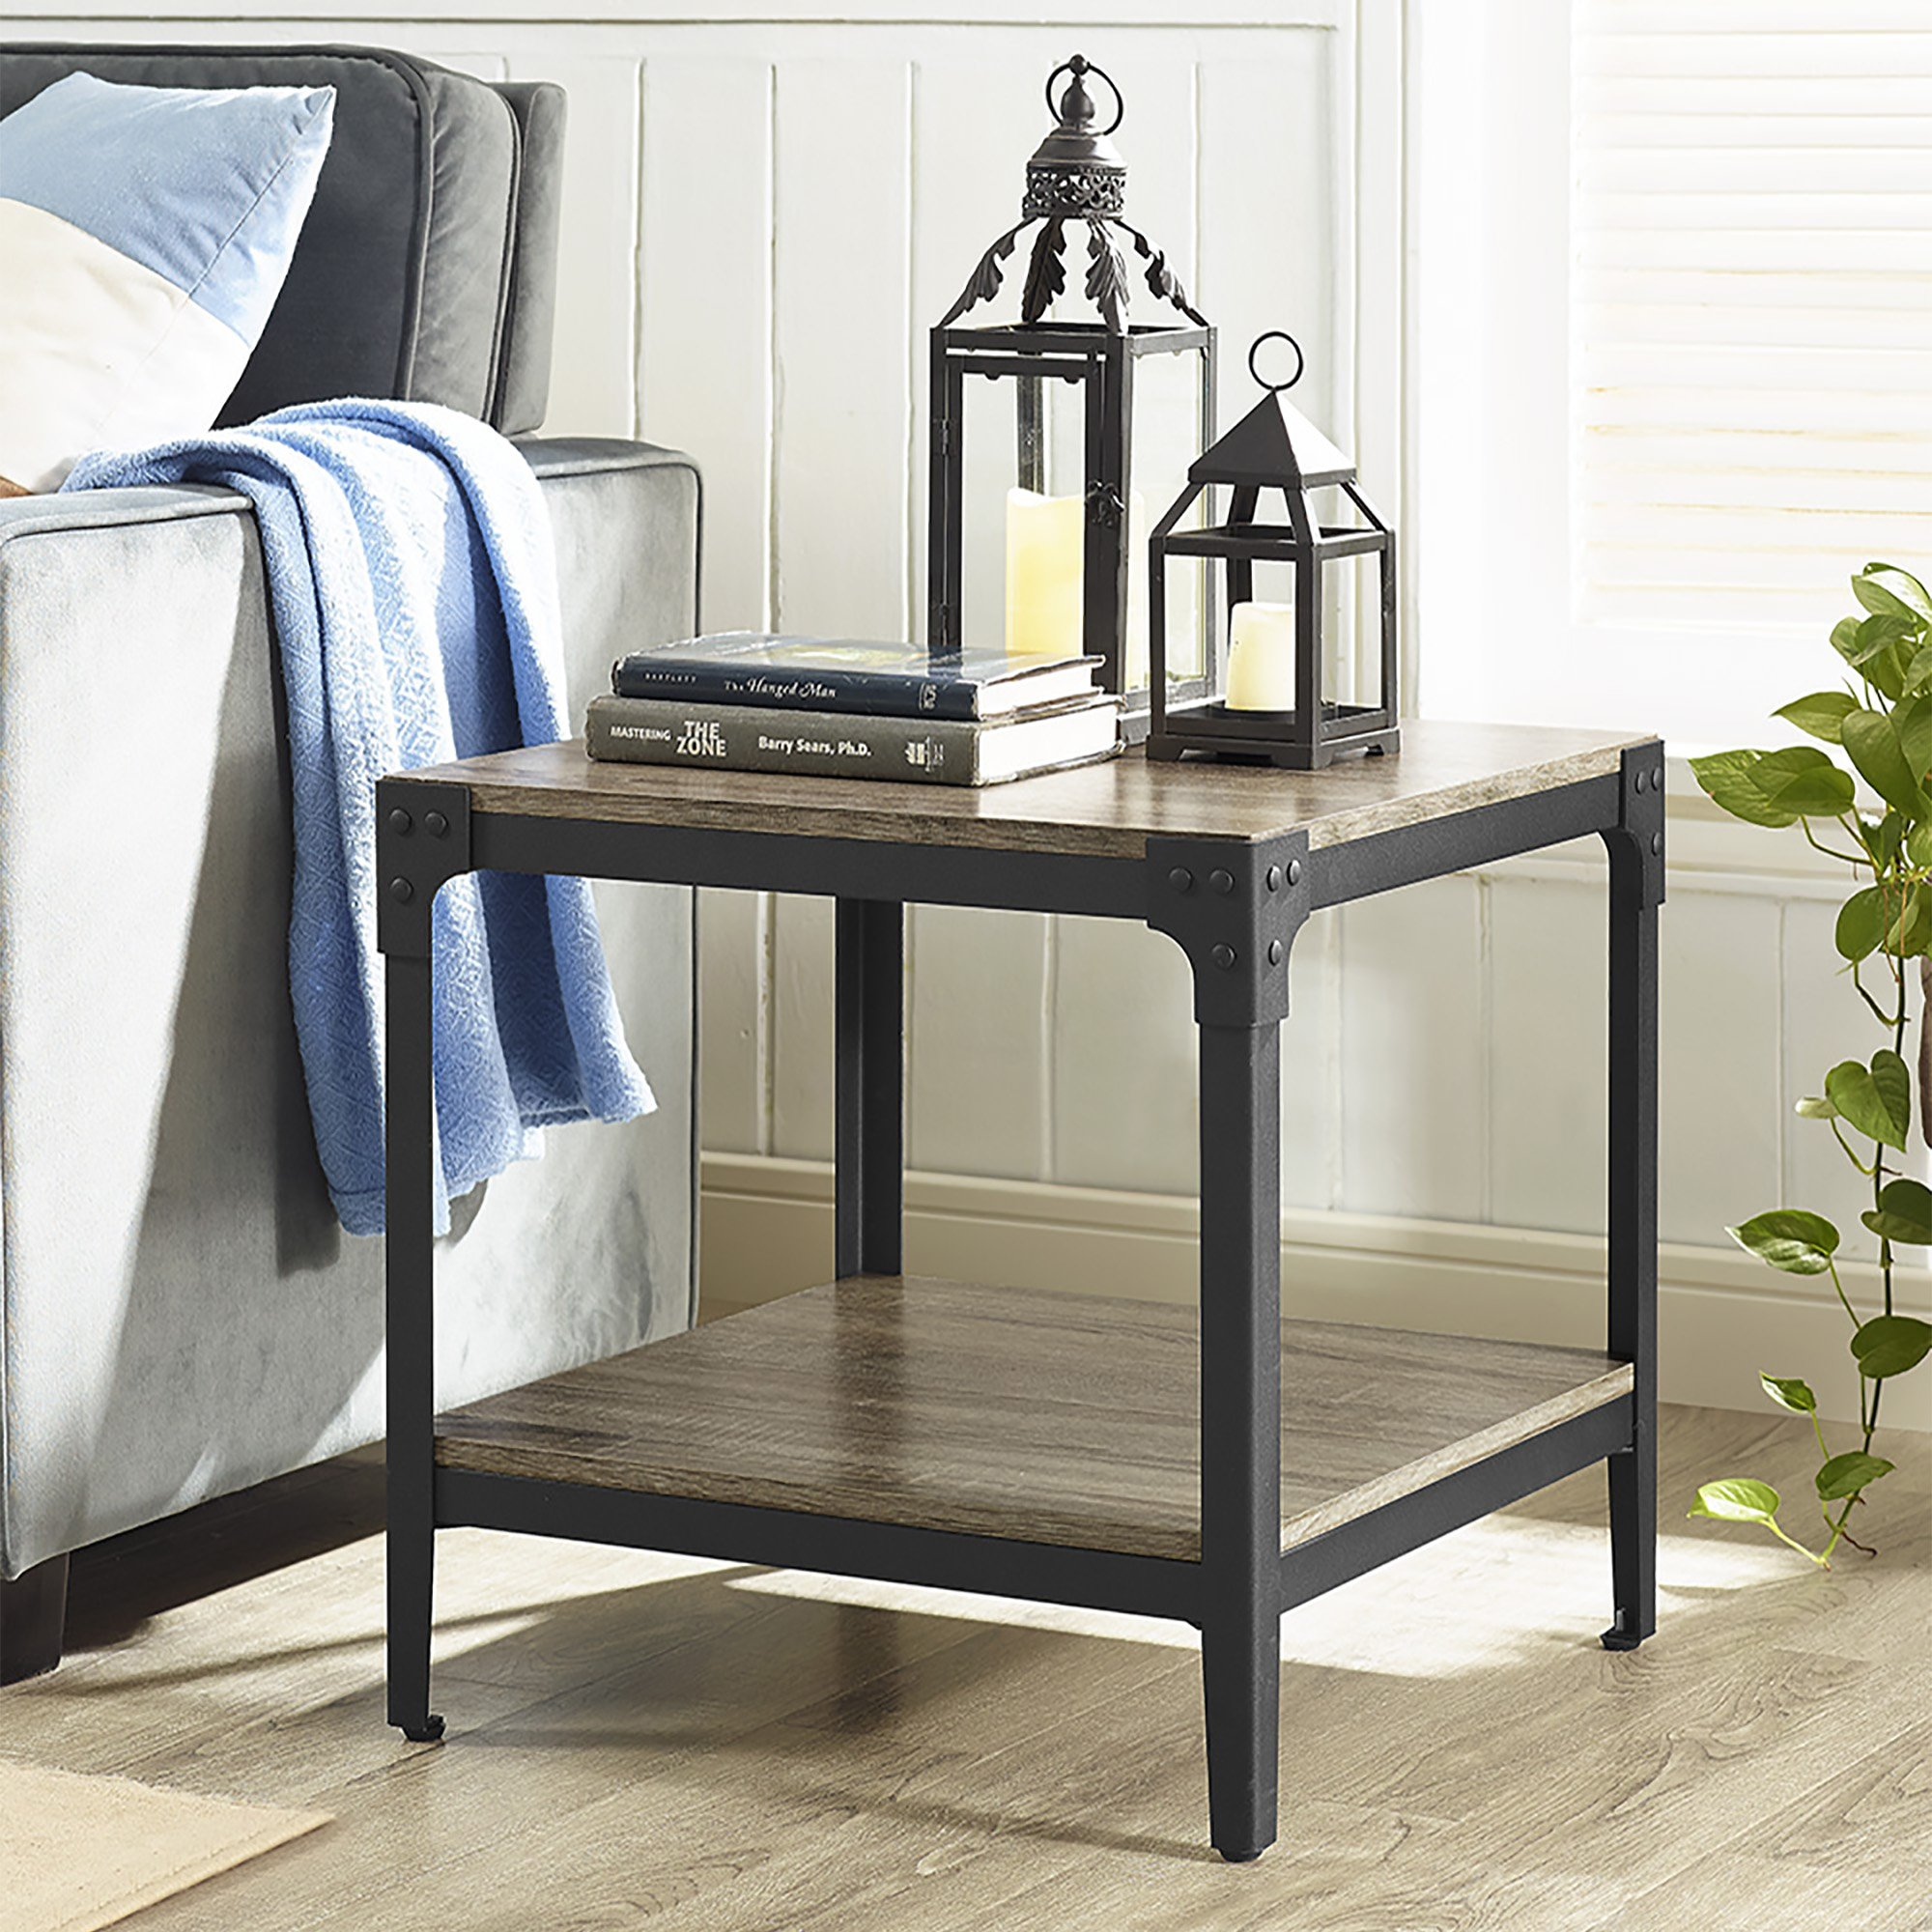 WE Furniture Angle Iron Wood End Tables in Driftwood - Set of 2